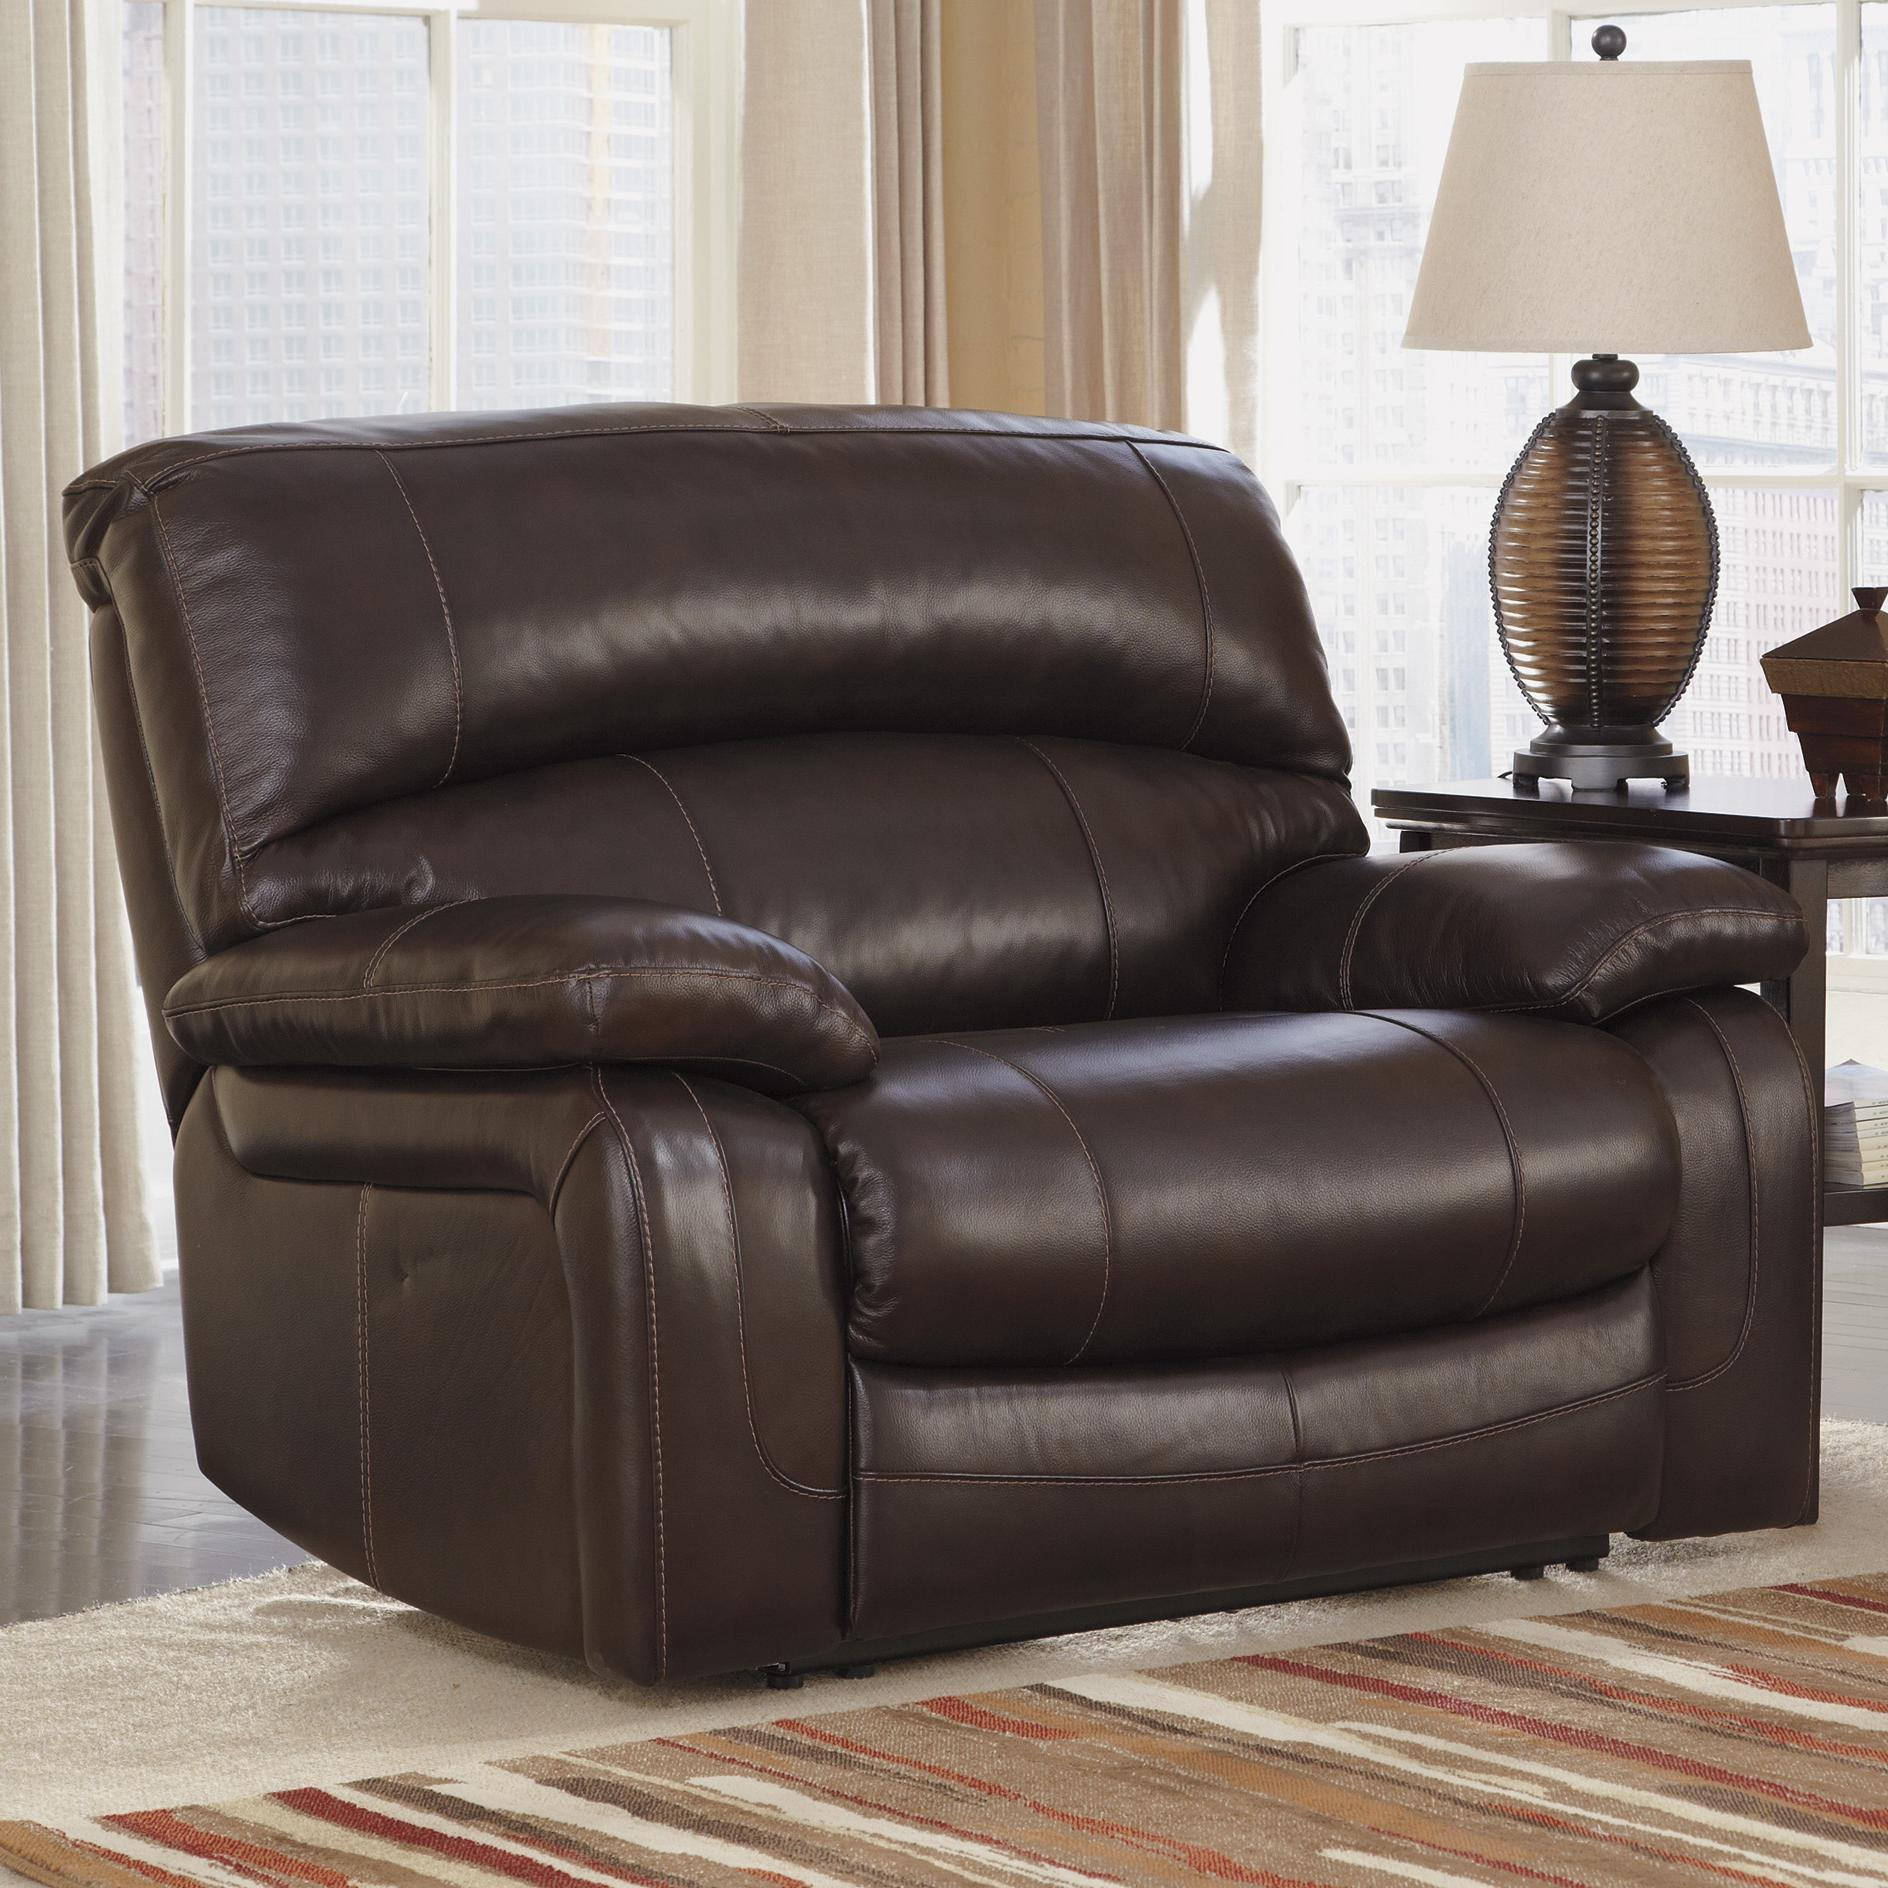 Signature Design by Ashley Damacio - Dark Brown Zero Wall Power Wide Recliner - Item Number: U9820082